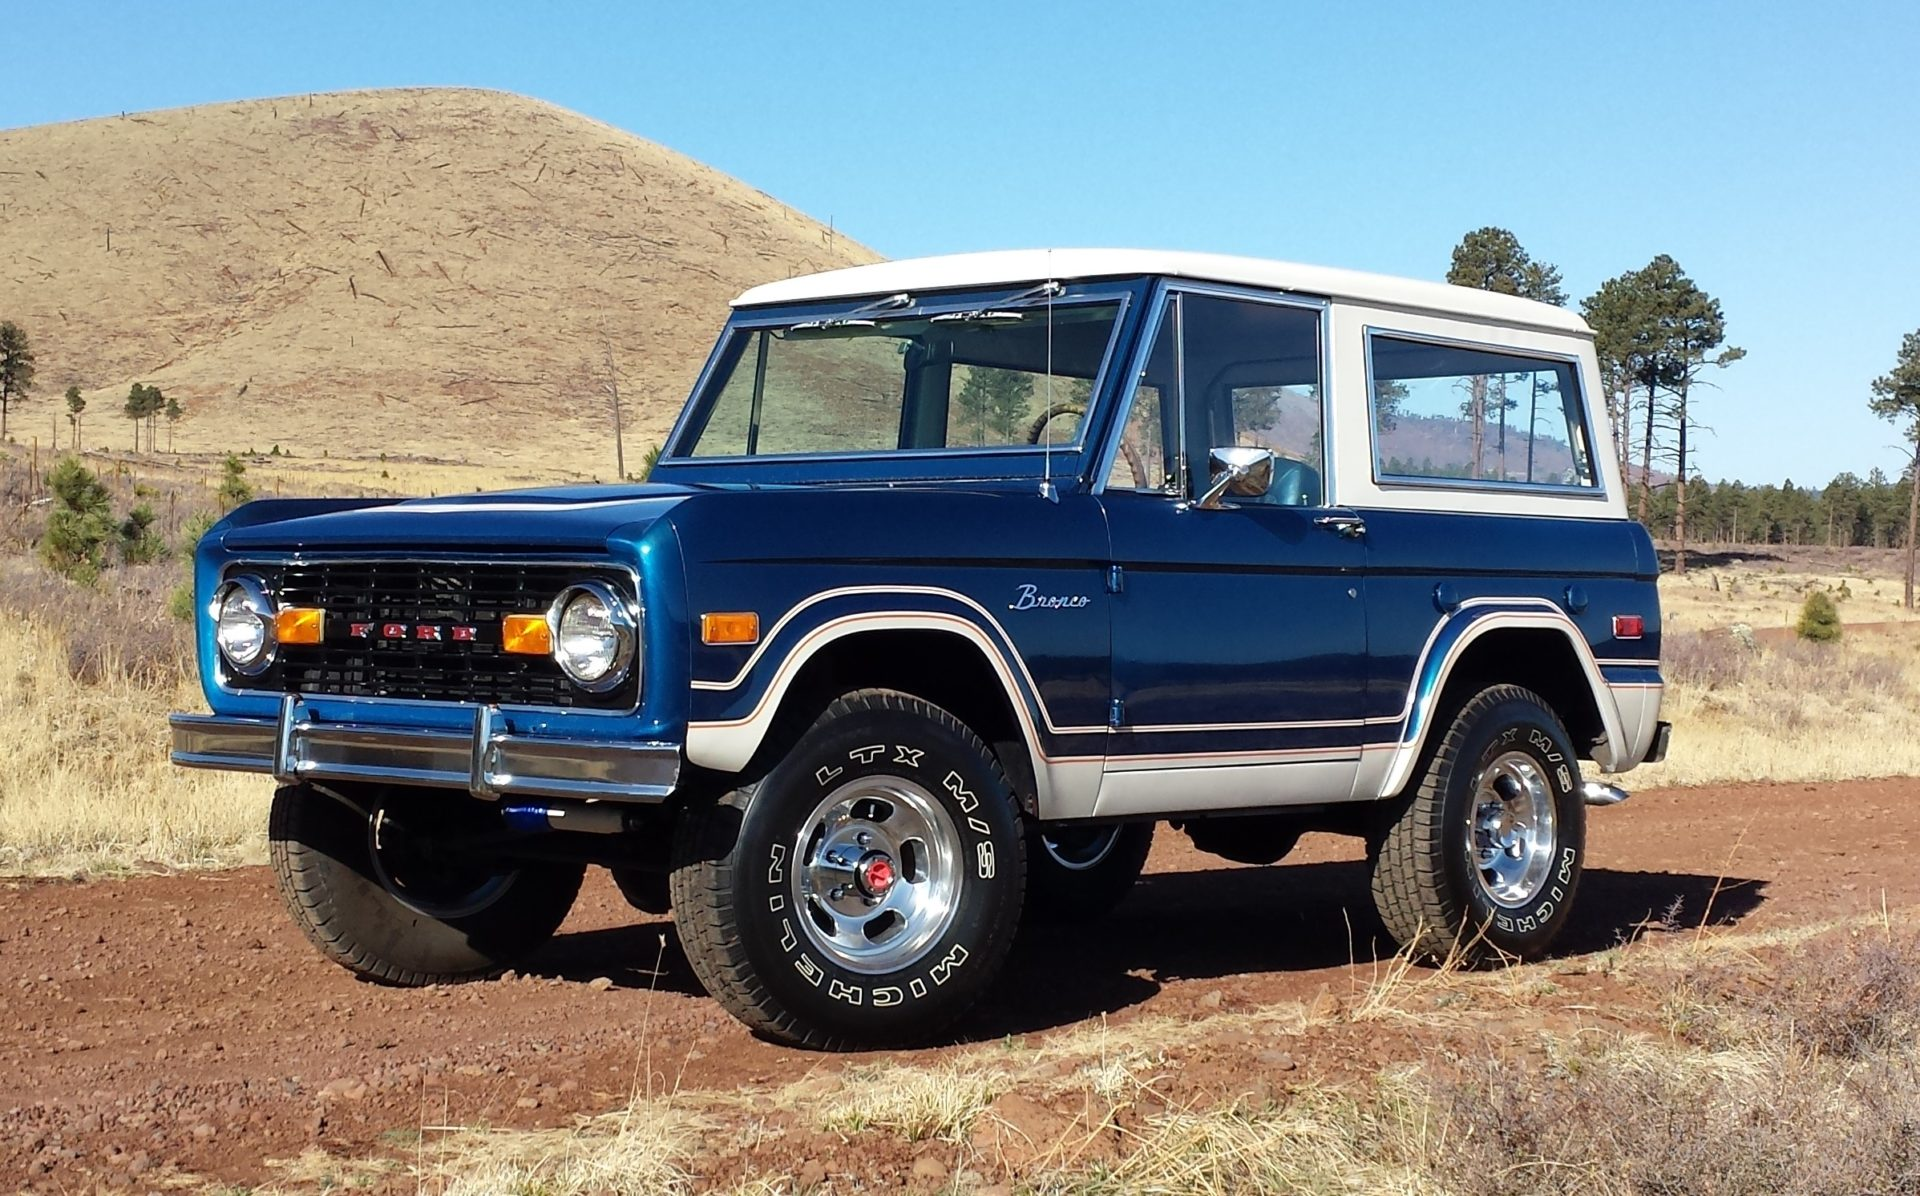 Vern and Trish's 1972 Ford Bronco